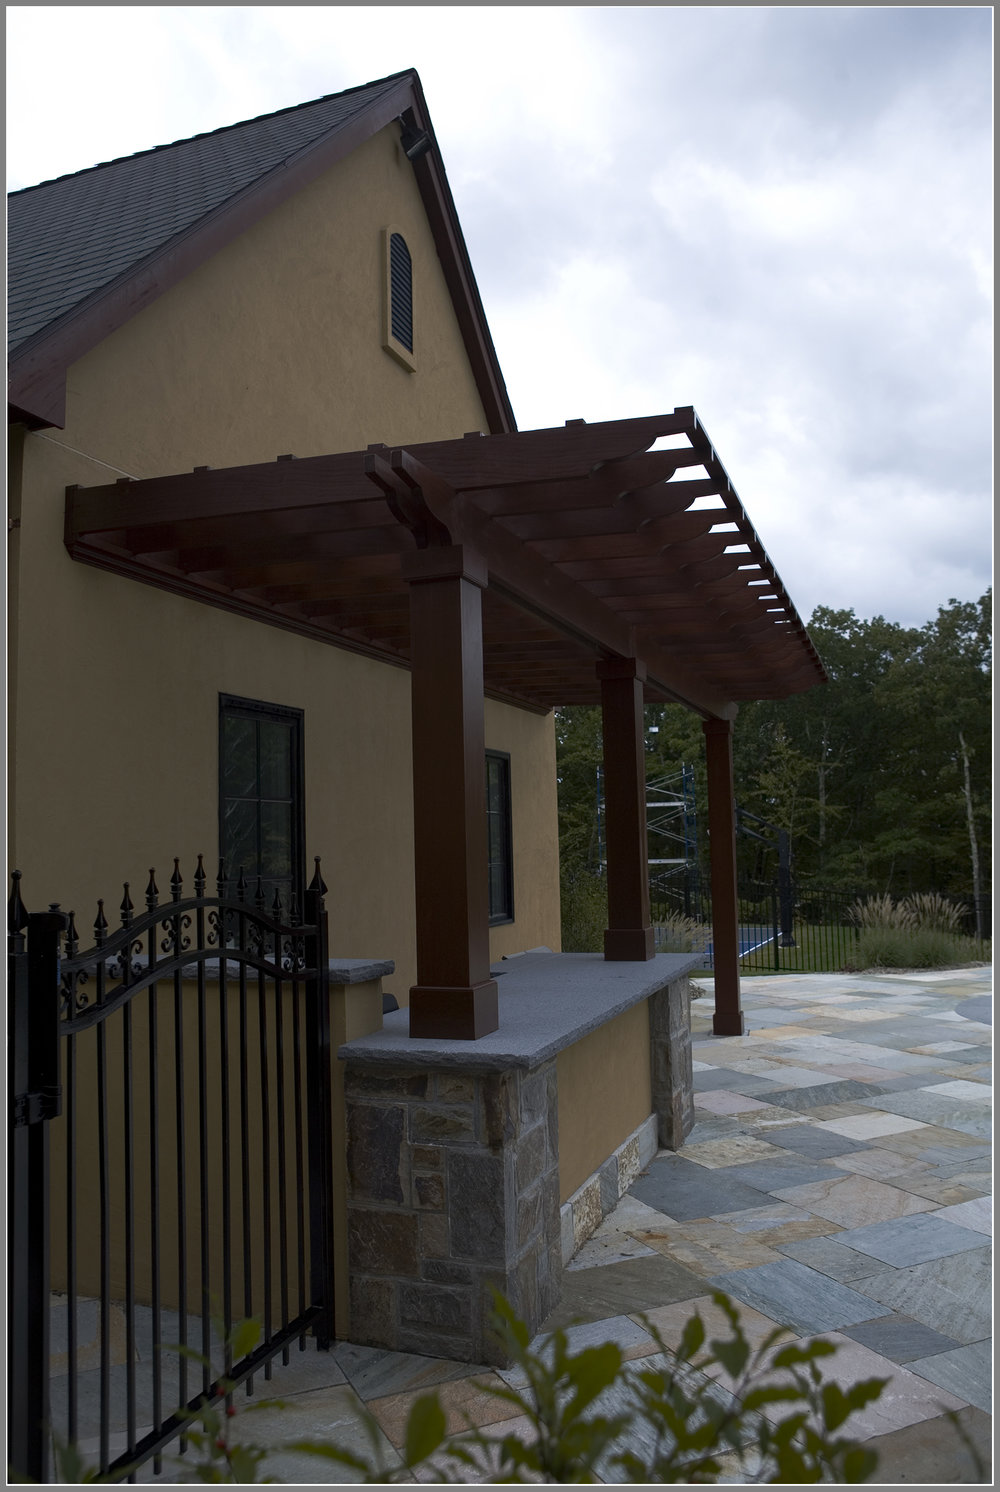 Pergola over Built-in Grill